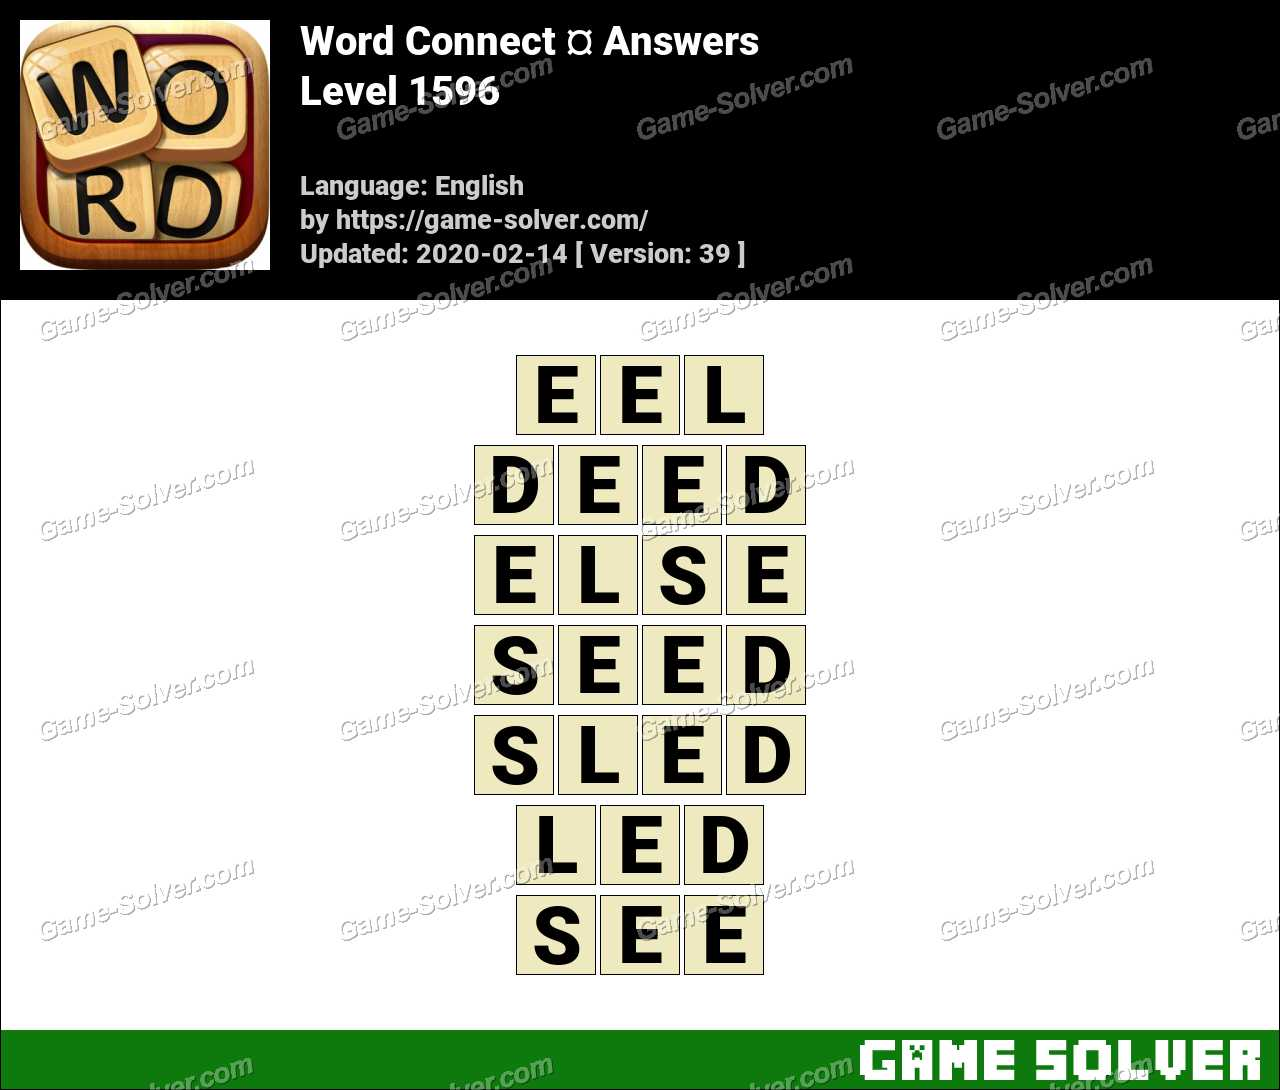 Word Connect Level 1596 Answers